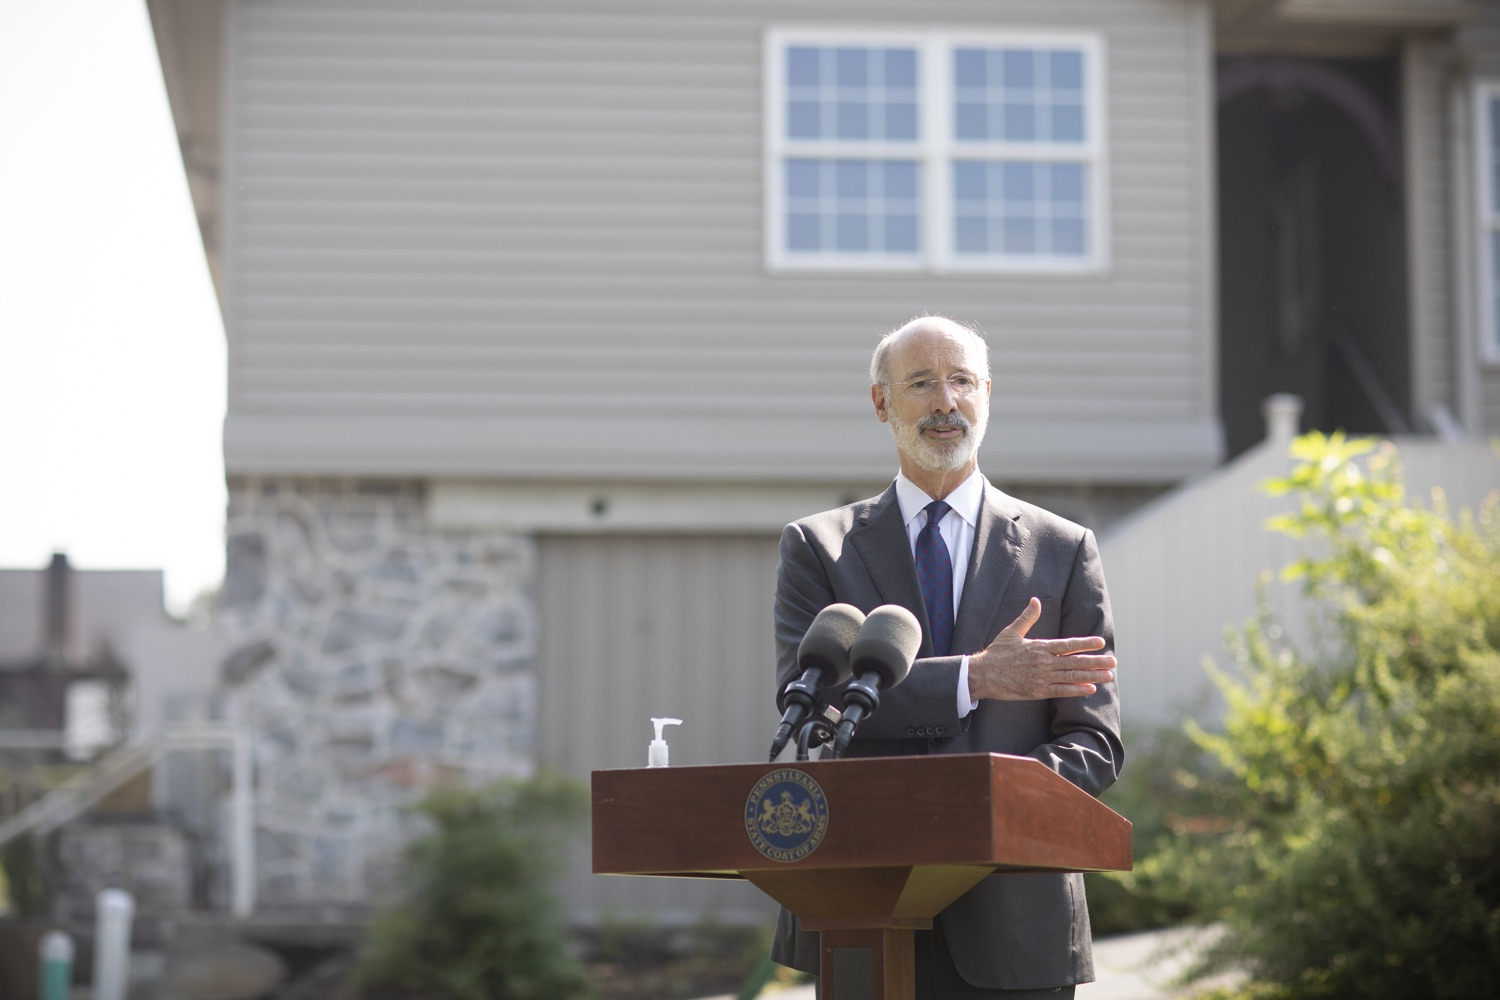 "<a href=""https://filesource.wostreaming.net/commonwealthofpa/photo/18248_gov_evictions_dz_032.jpg"" target=""_blank"">⇣ Download Photo<br></a>Pennsylvania Governor Tom Wolf speaking to the press.   With rent and mortgage debt mounting for hundreds of thousands of Pennsylvanians, Governor Tom Wolf is calling on the General Assembly to fix a state relief program to prevent many families from becoming homeless and enact a moratorium on evictions and foreclosures until the end of the year. The governor was joined today by legislators and housing advocates at a press conference in Lancaster County. Harrisburg, PA  Sept. 8, 2020"